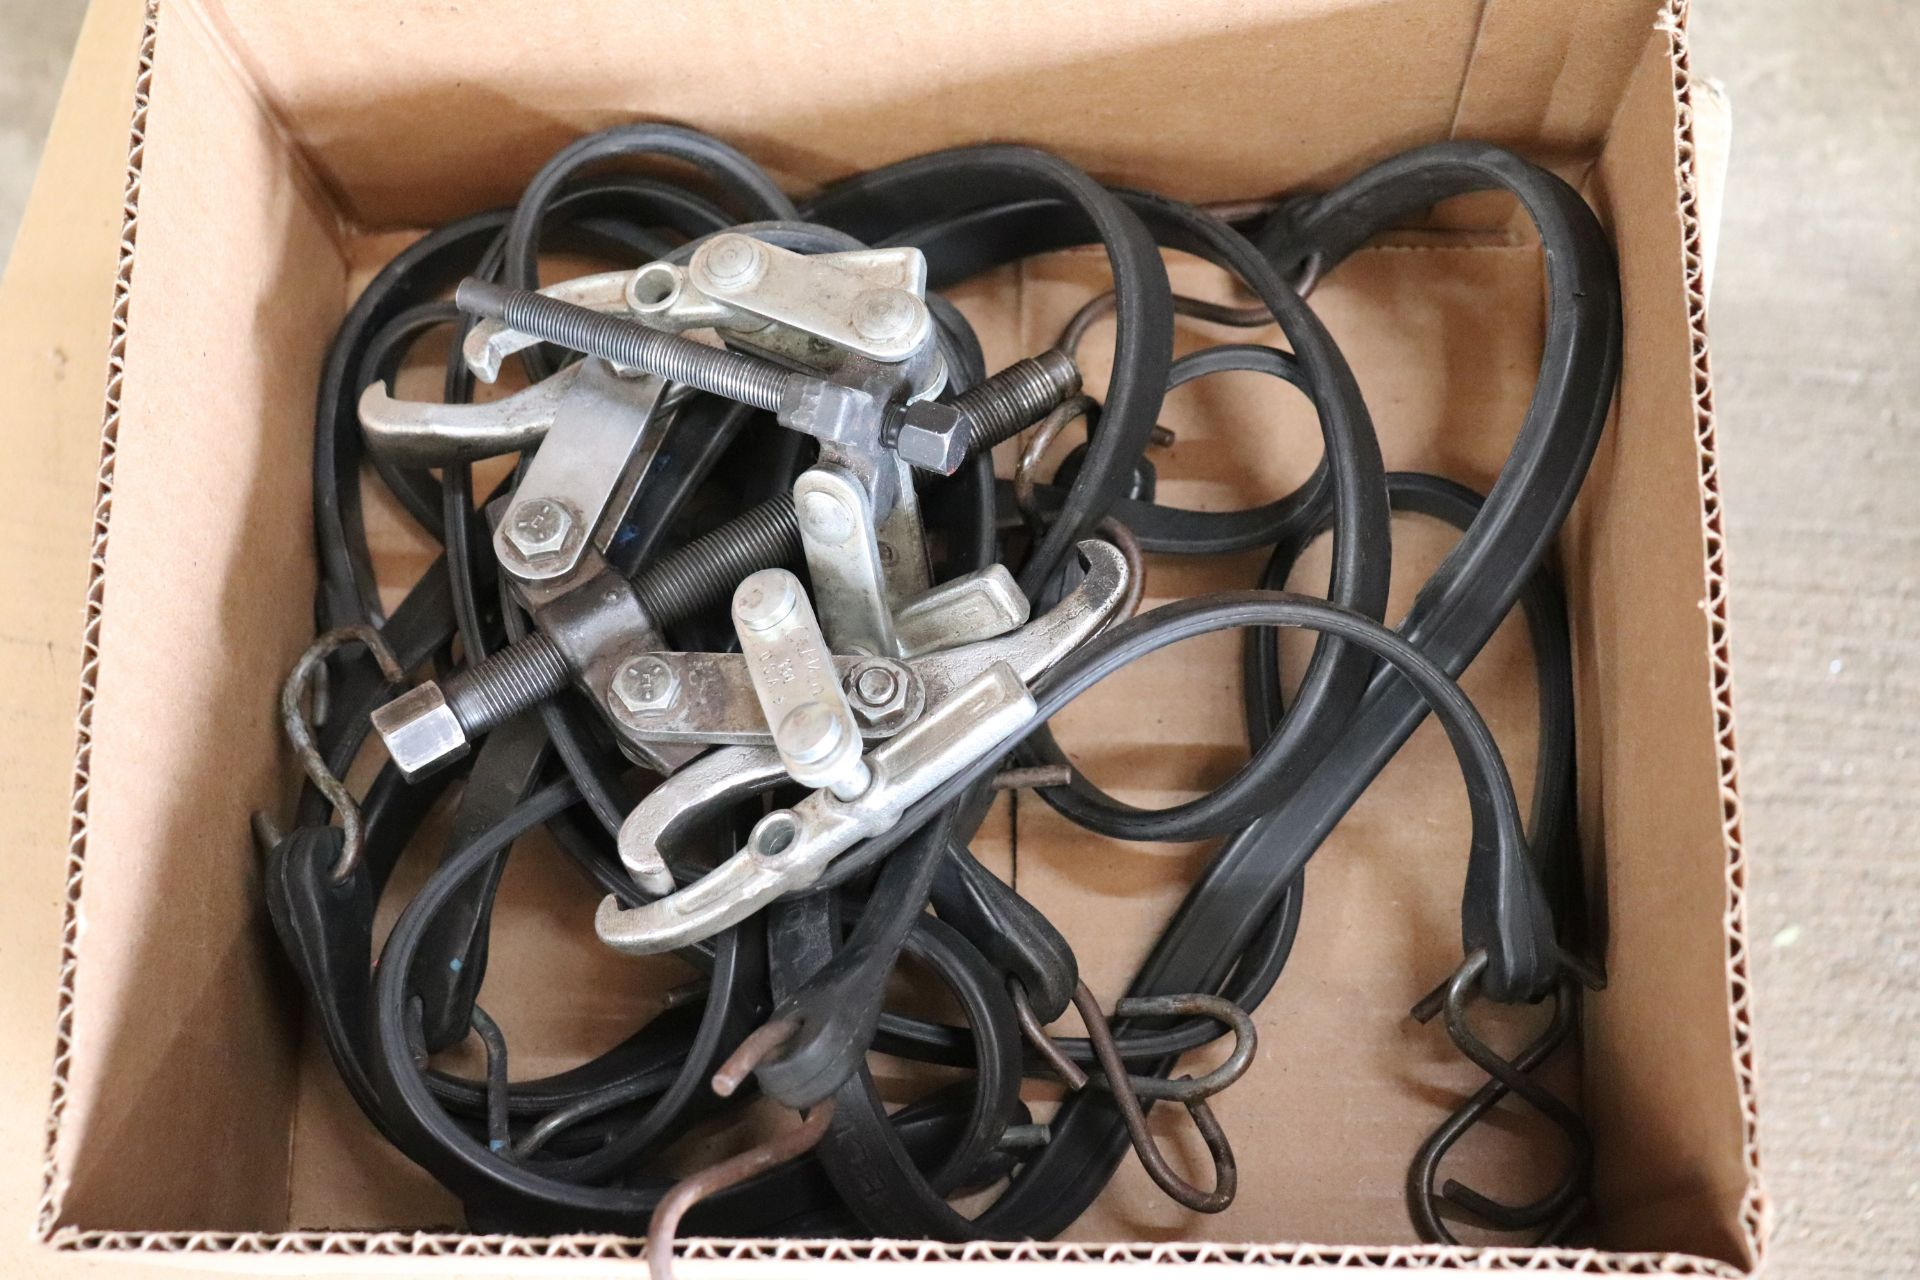 Lot of bungee cords and gear pullers